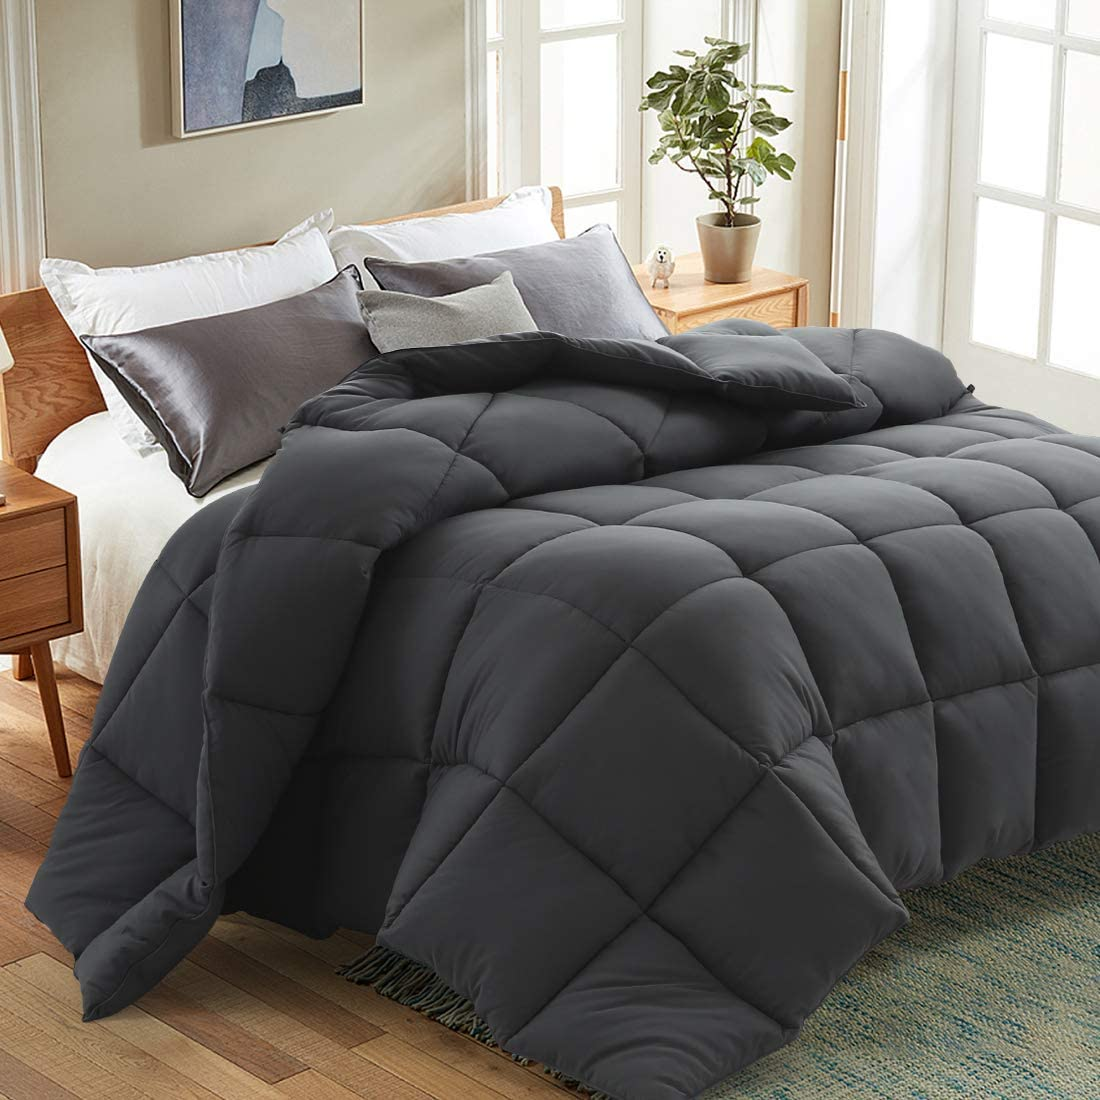 Grandre All Season Down Alternative Fluffy Comforter,Lightedweight Cooling Duvet Insert for Night Sweats with 8 Loops Box Stitched 64 by 88 Inches Hypoallergenic Micorfiber,White,Twin